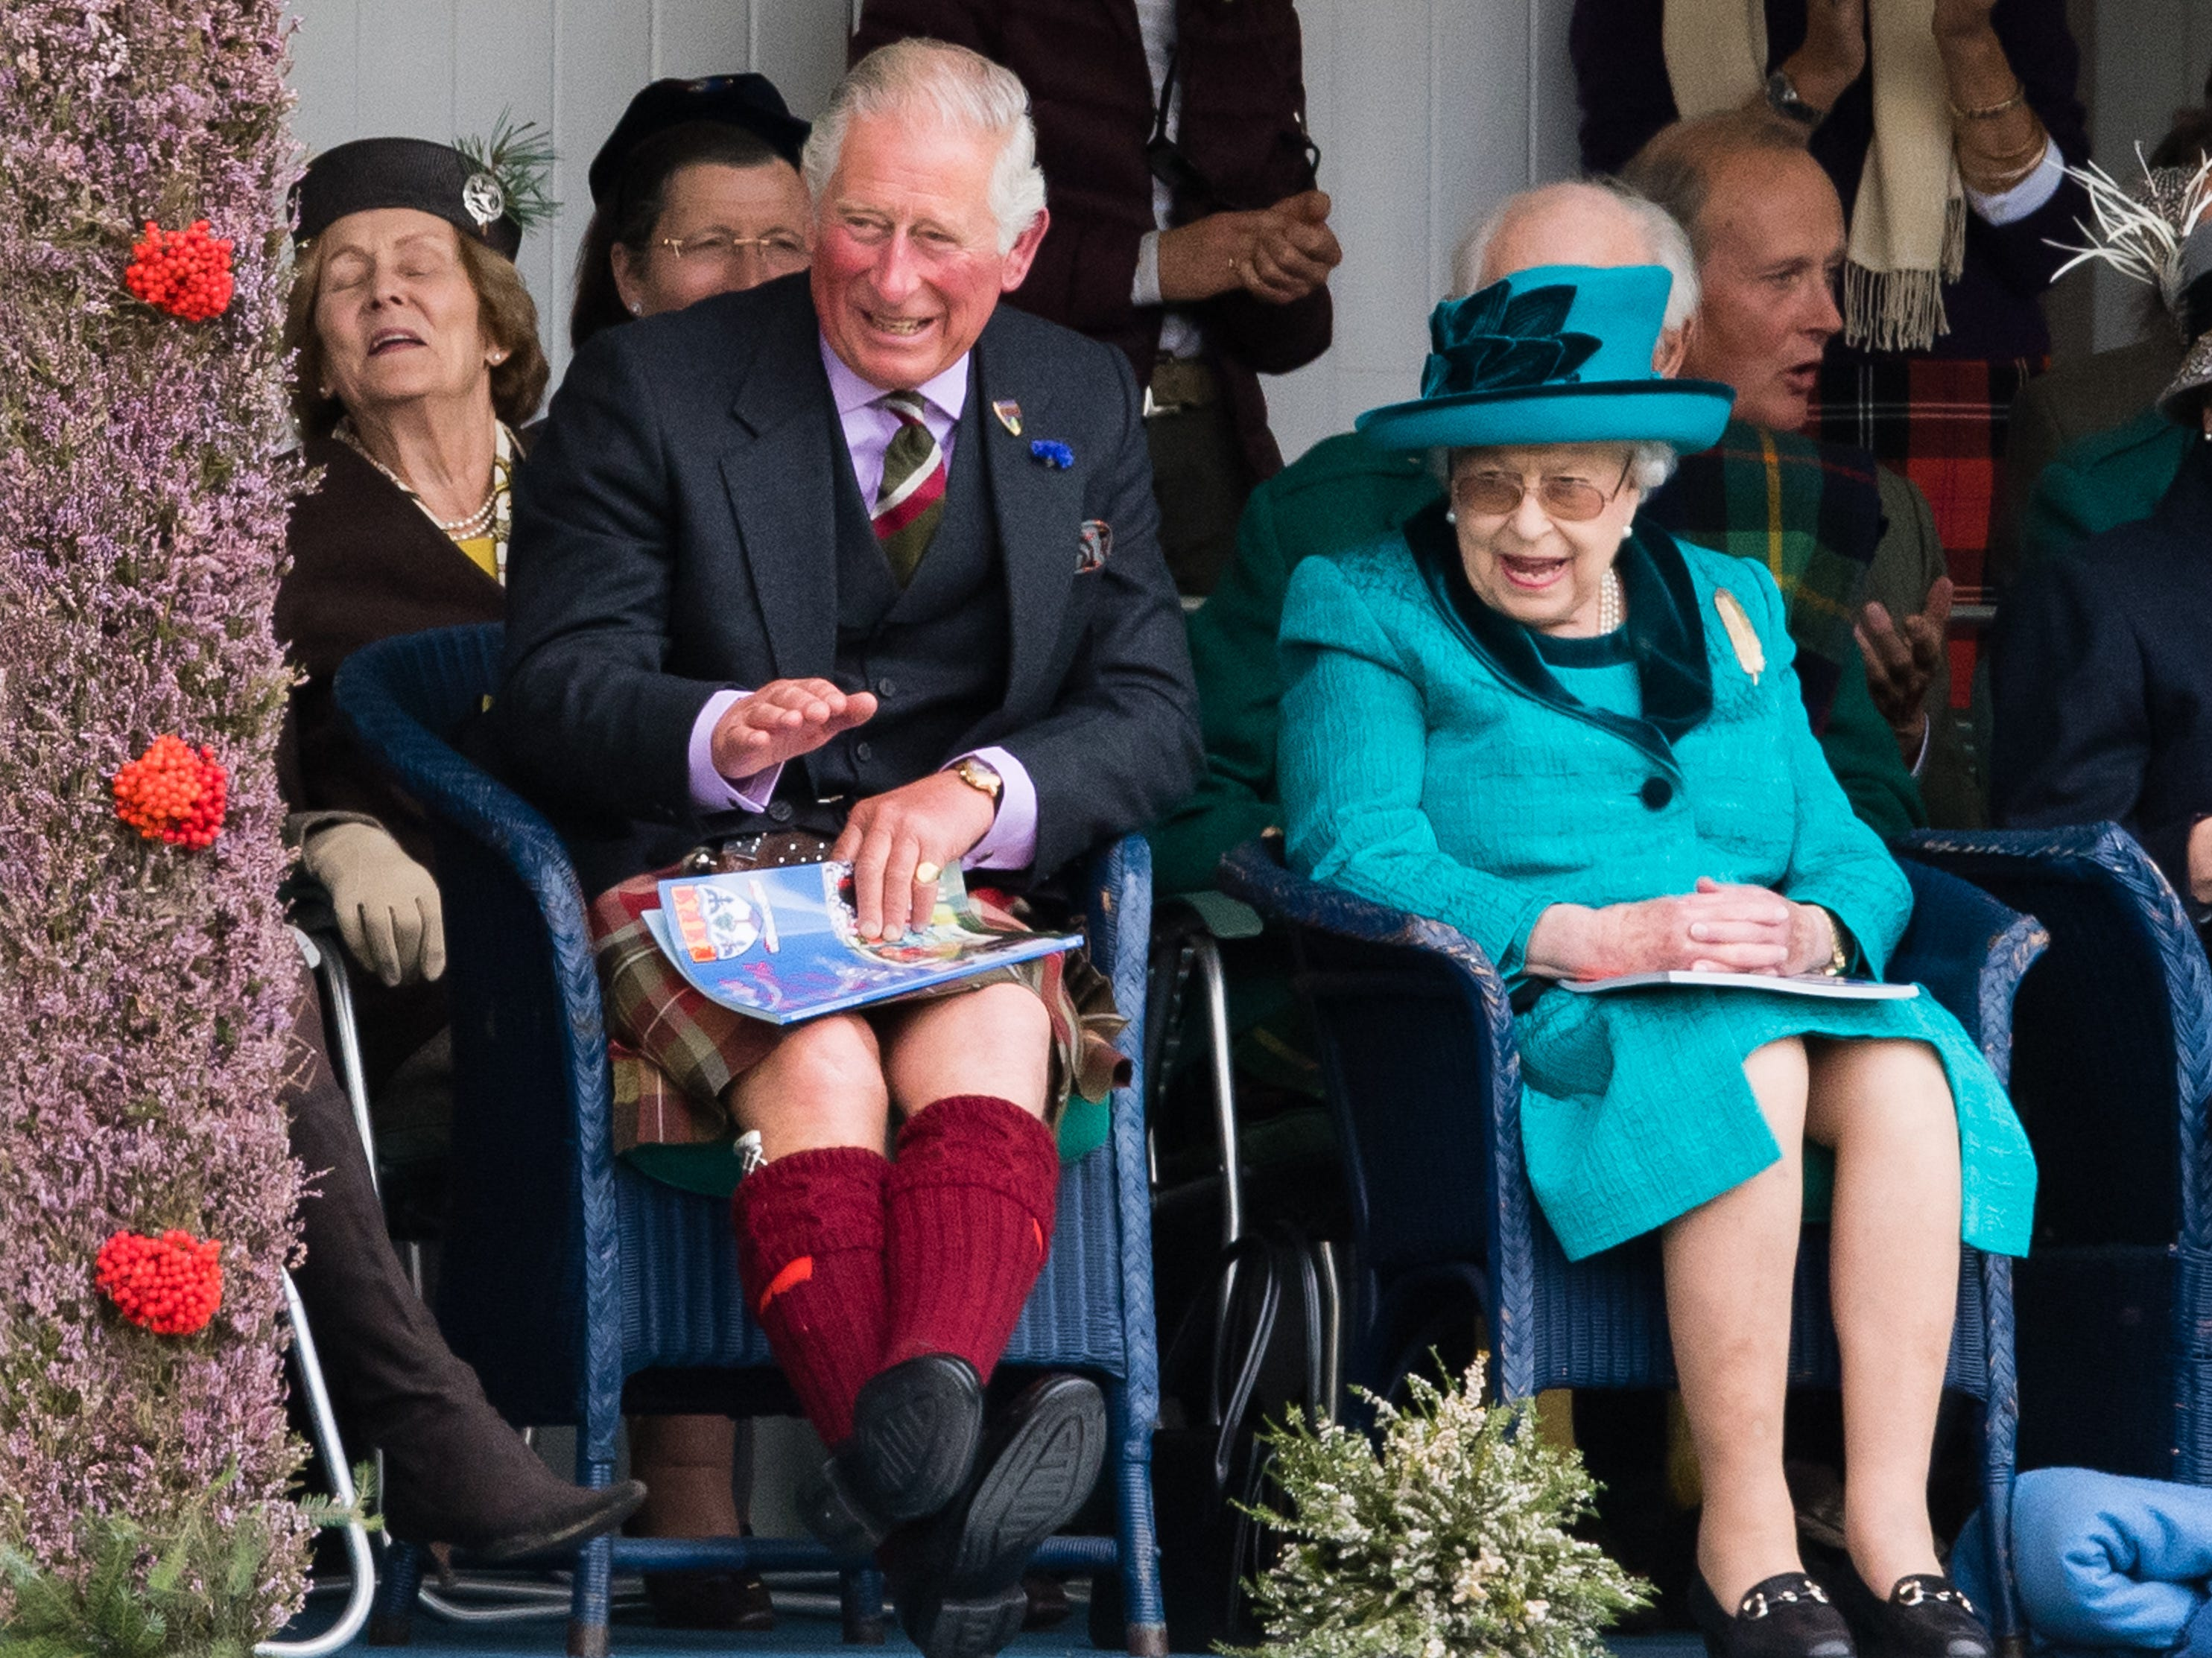 Prince Charles, Prince of Wales and Queen Elizabeth II attend the 2018 Braemar Highland Gathering at The Princess Royal and Duke of Fife Memorial Park on Sept. 1, 2018 in Braemar, Scotland.